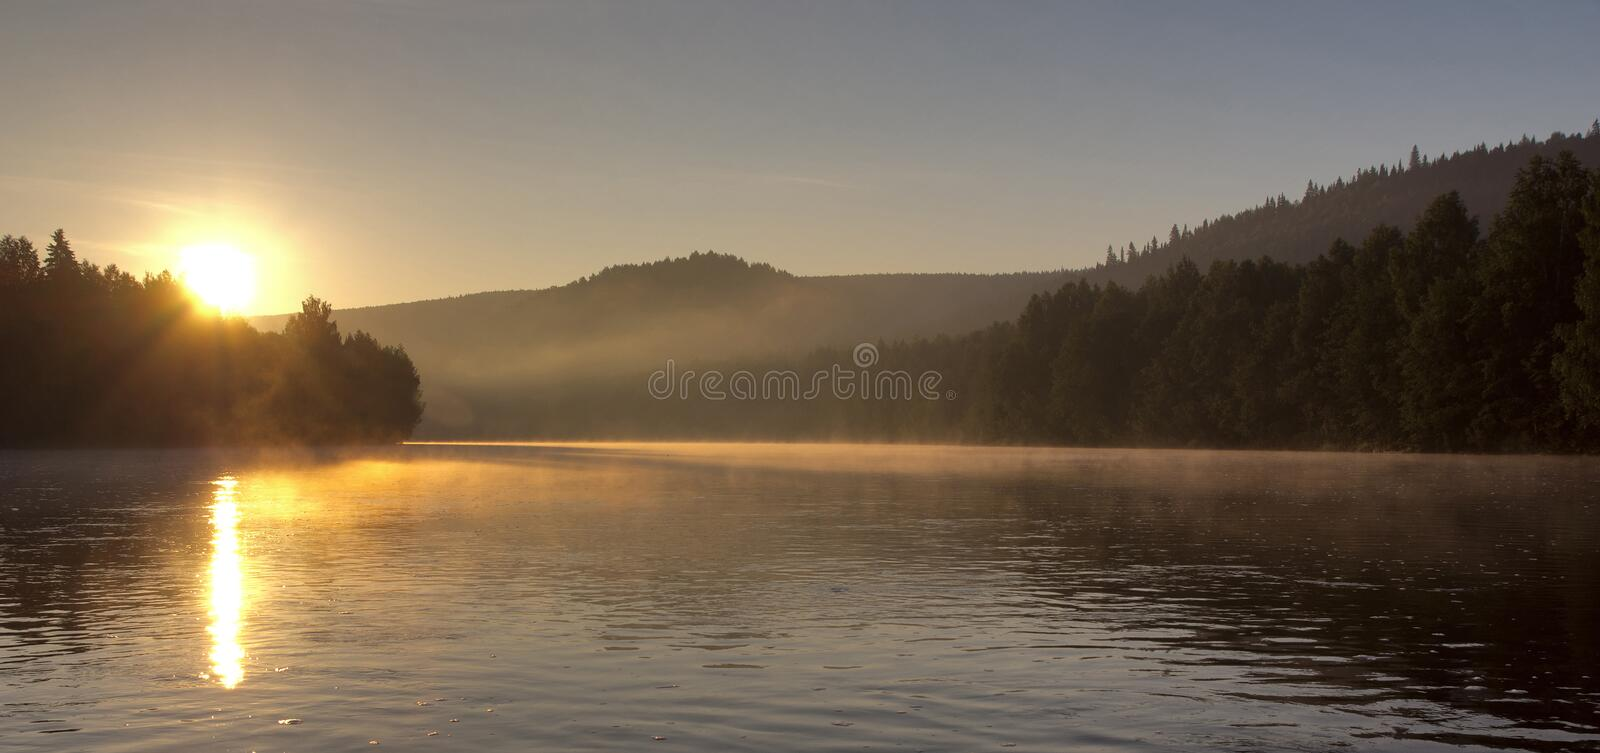 Dawn on the river. Scenic view of river Kosva with blue sky, Perm, Russian Federation stock images